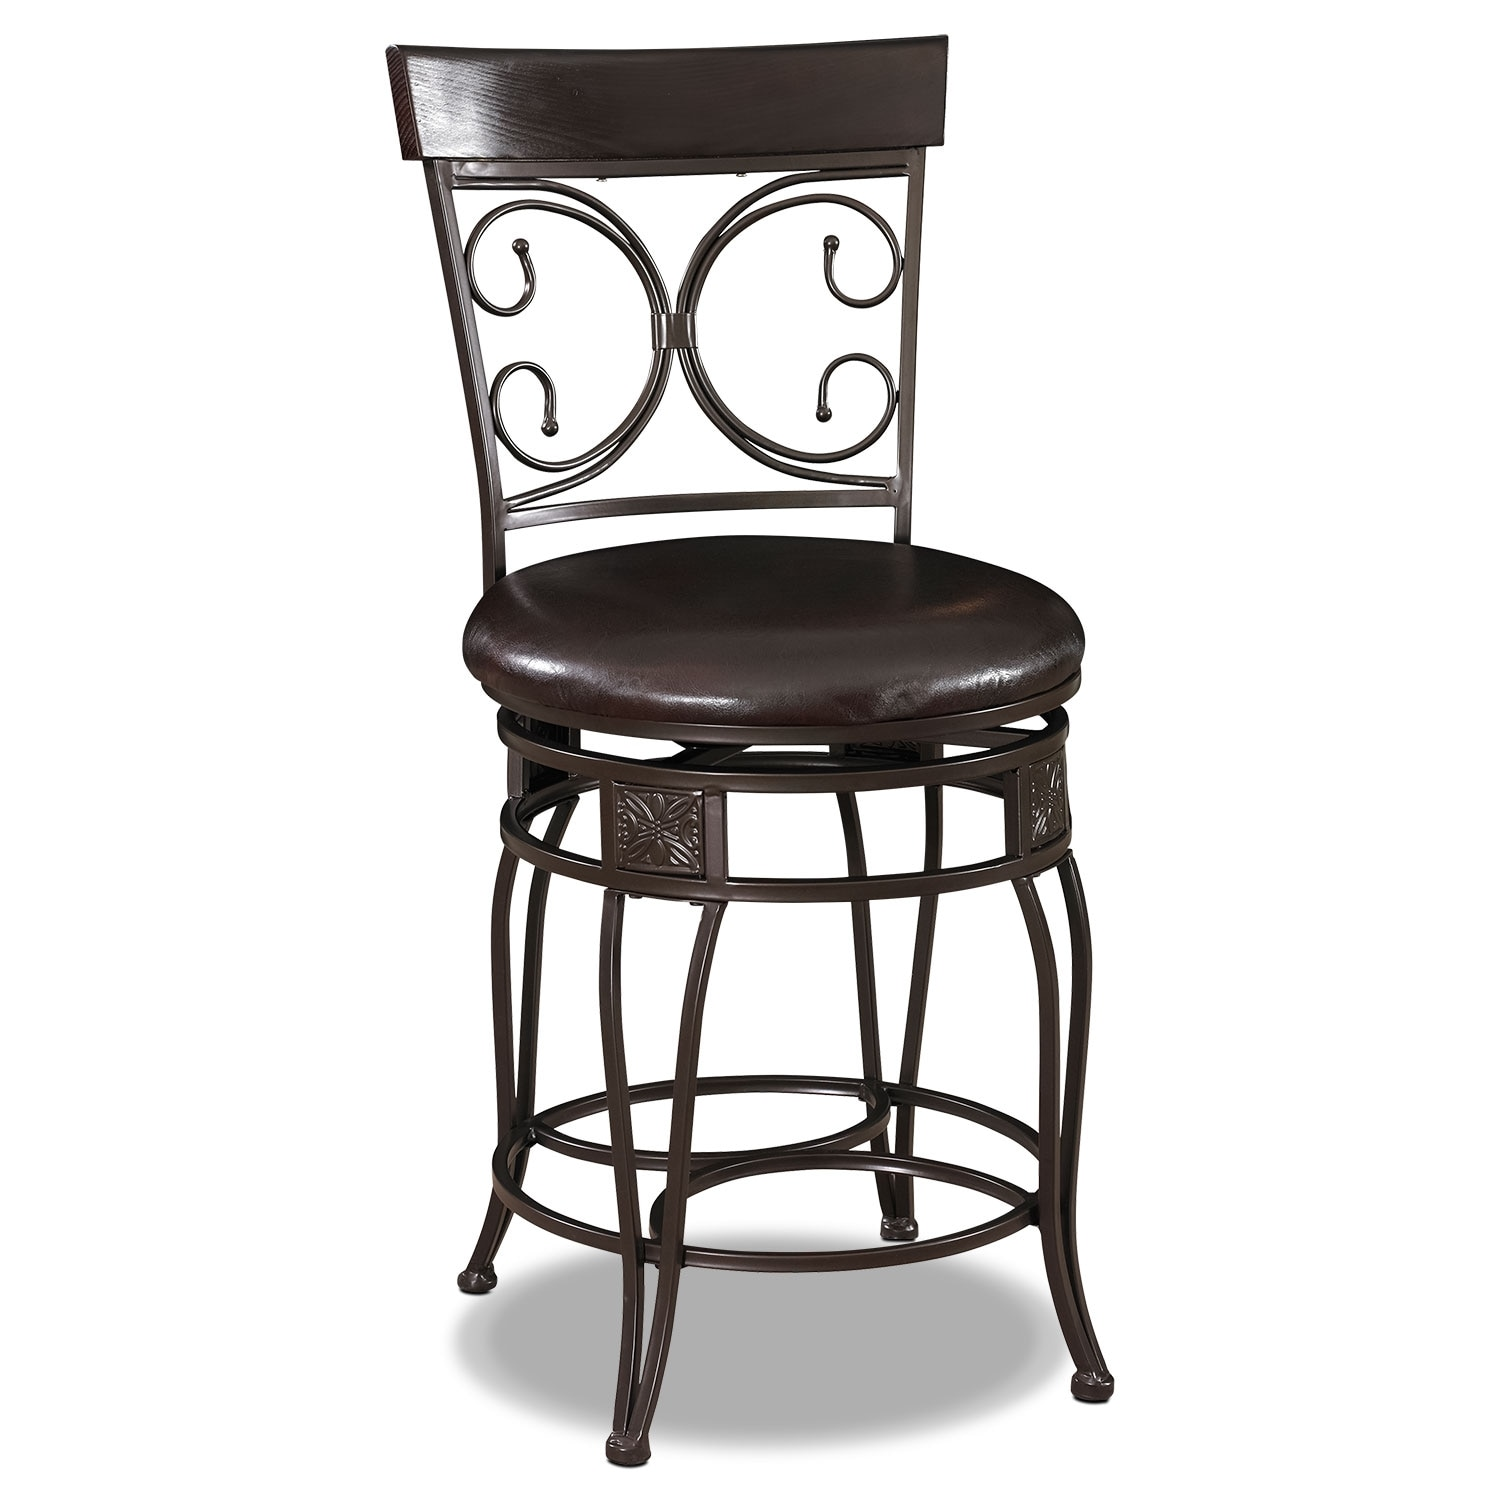 Grandview Counter-Height Stool - Black